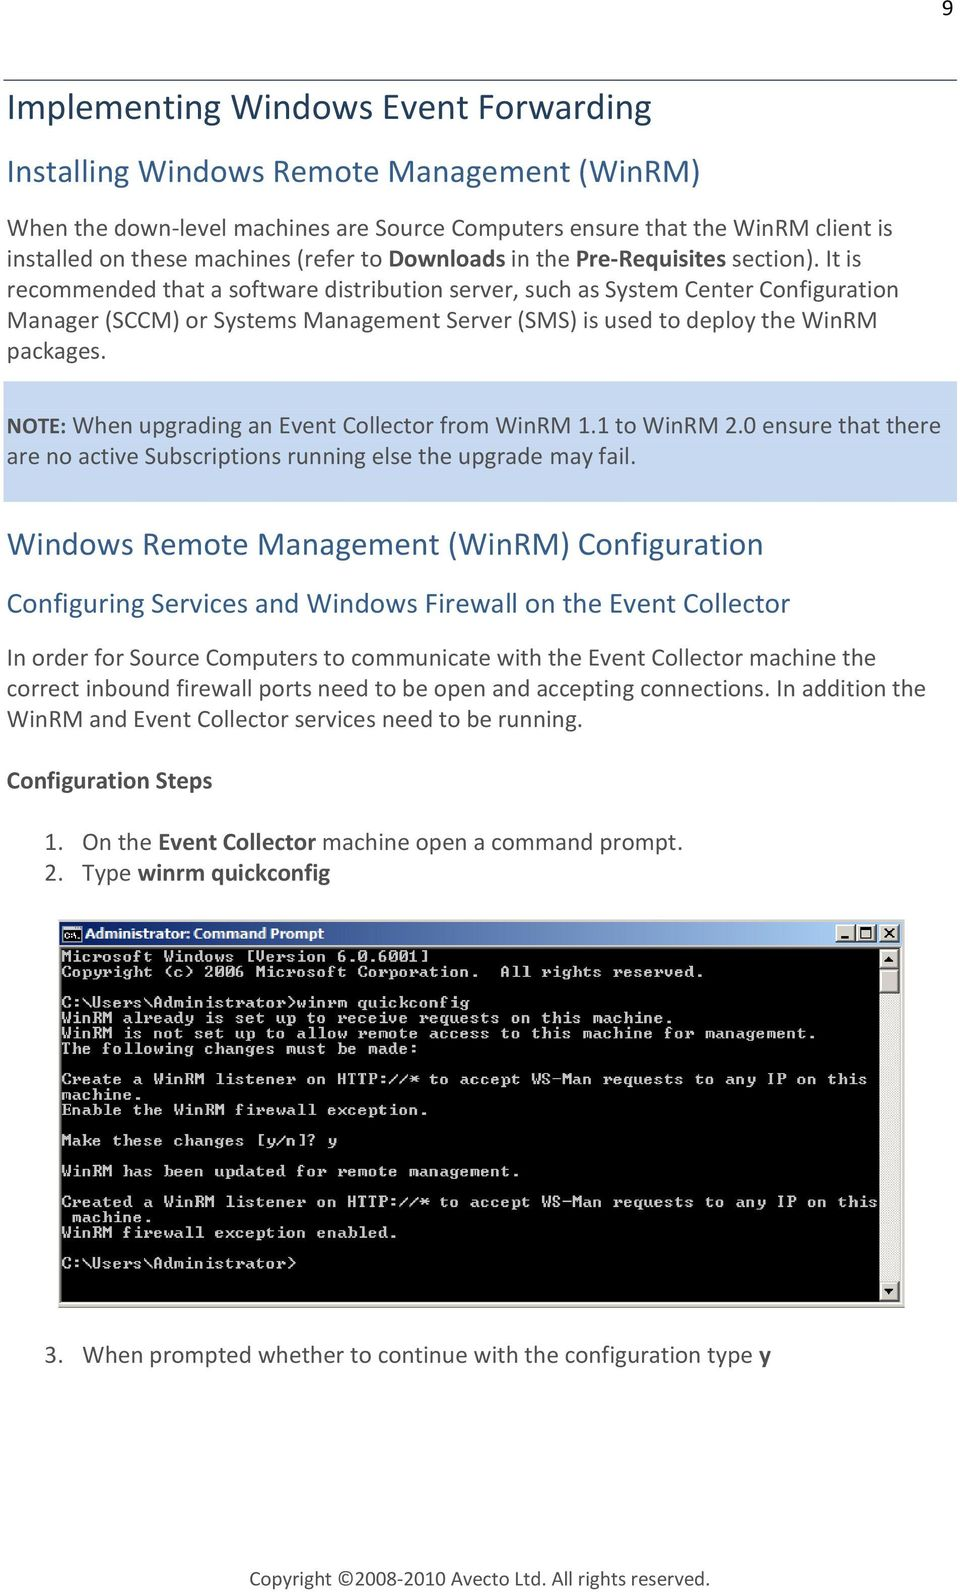 It is recommended that a software distribution server, such as System Center Configuration Manager (SCCM) or Systems Management Server (SMS) is used to deploy the WinRM packages.